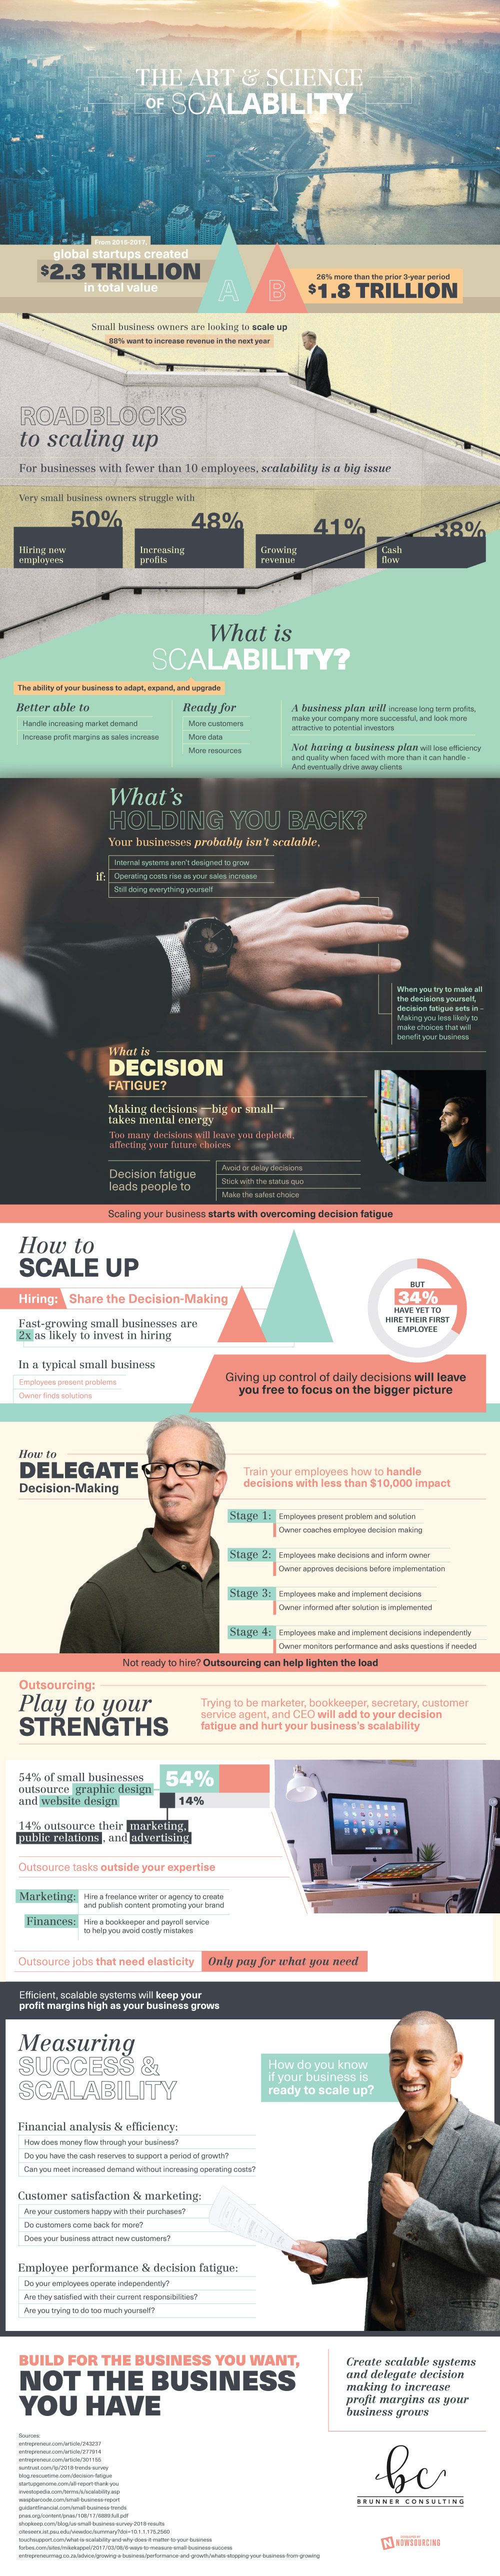 Is Your Business Built To Scale Up? 1